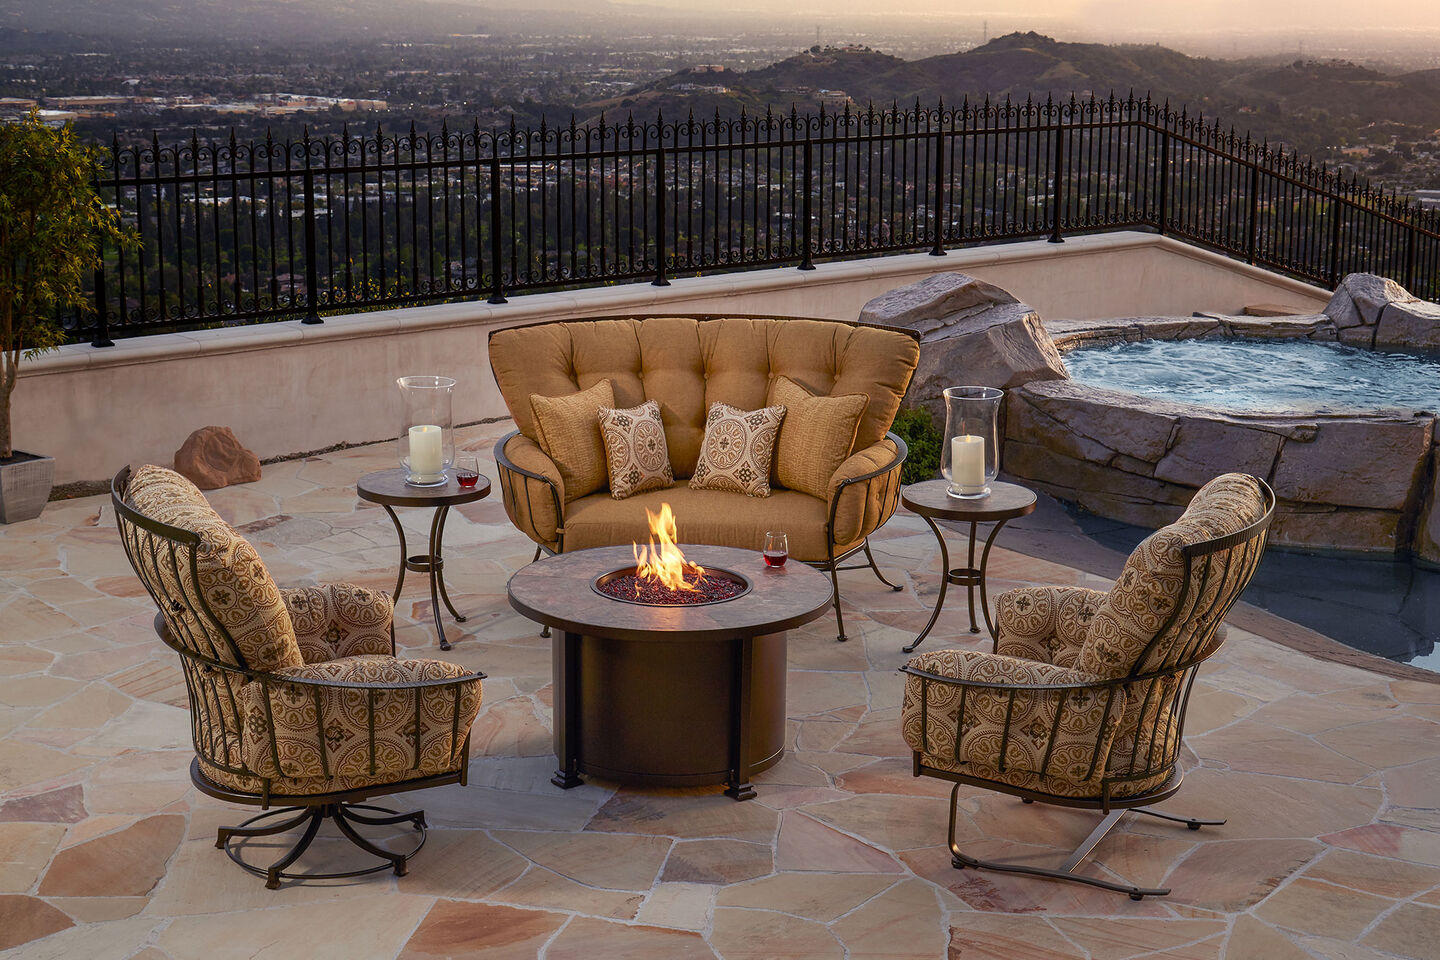 Monterra lounge collection with fire pit on tile patio overlooking the city